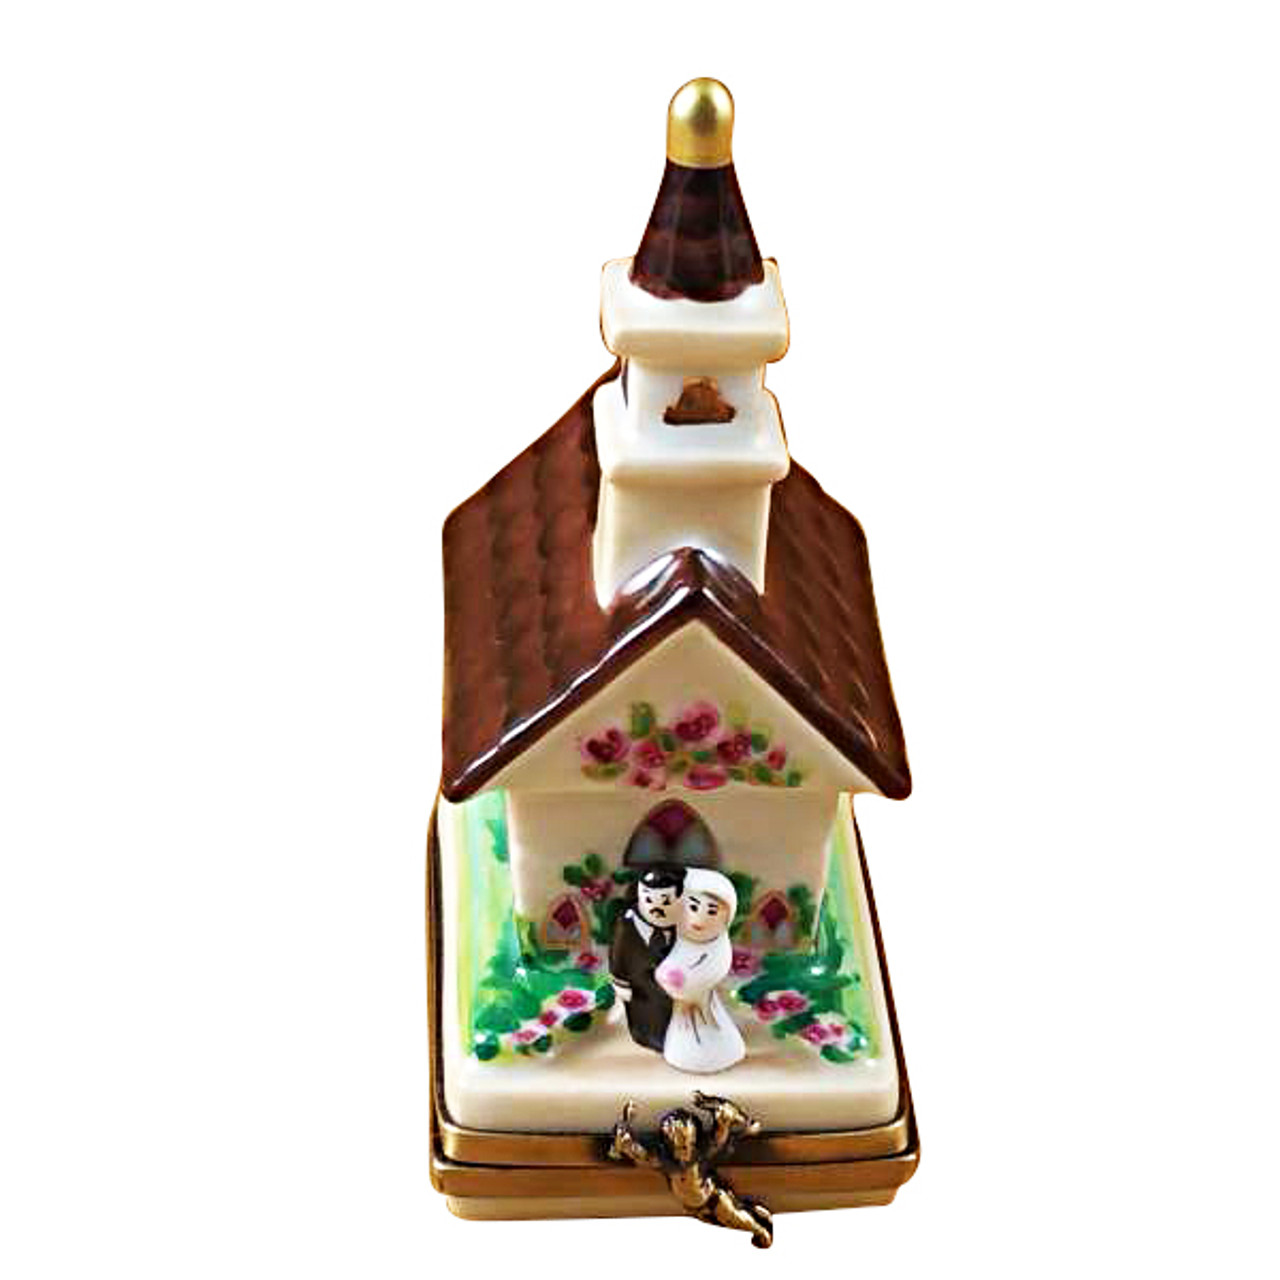 Limoges Imports Wedding Church W/Removable Bride & Groom Limoges Box